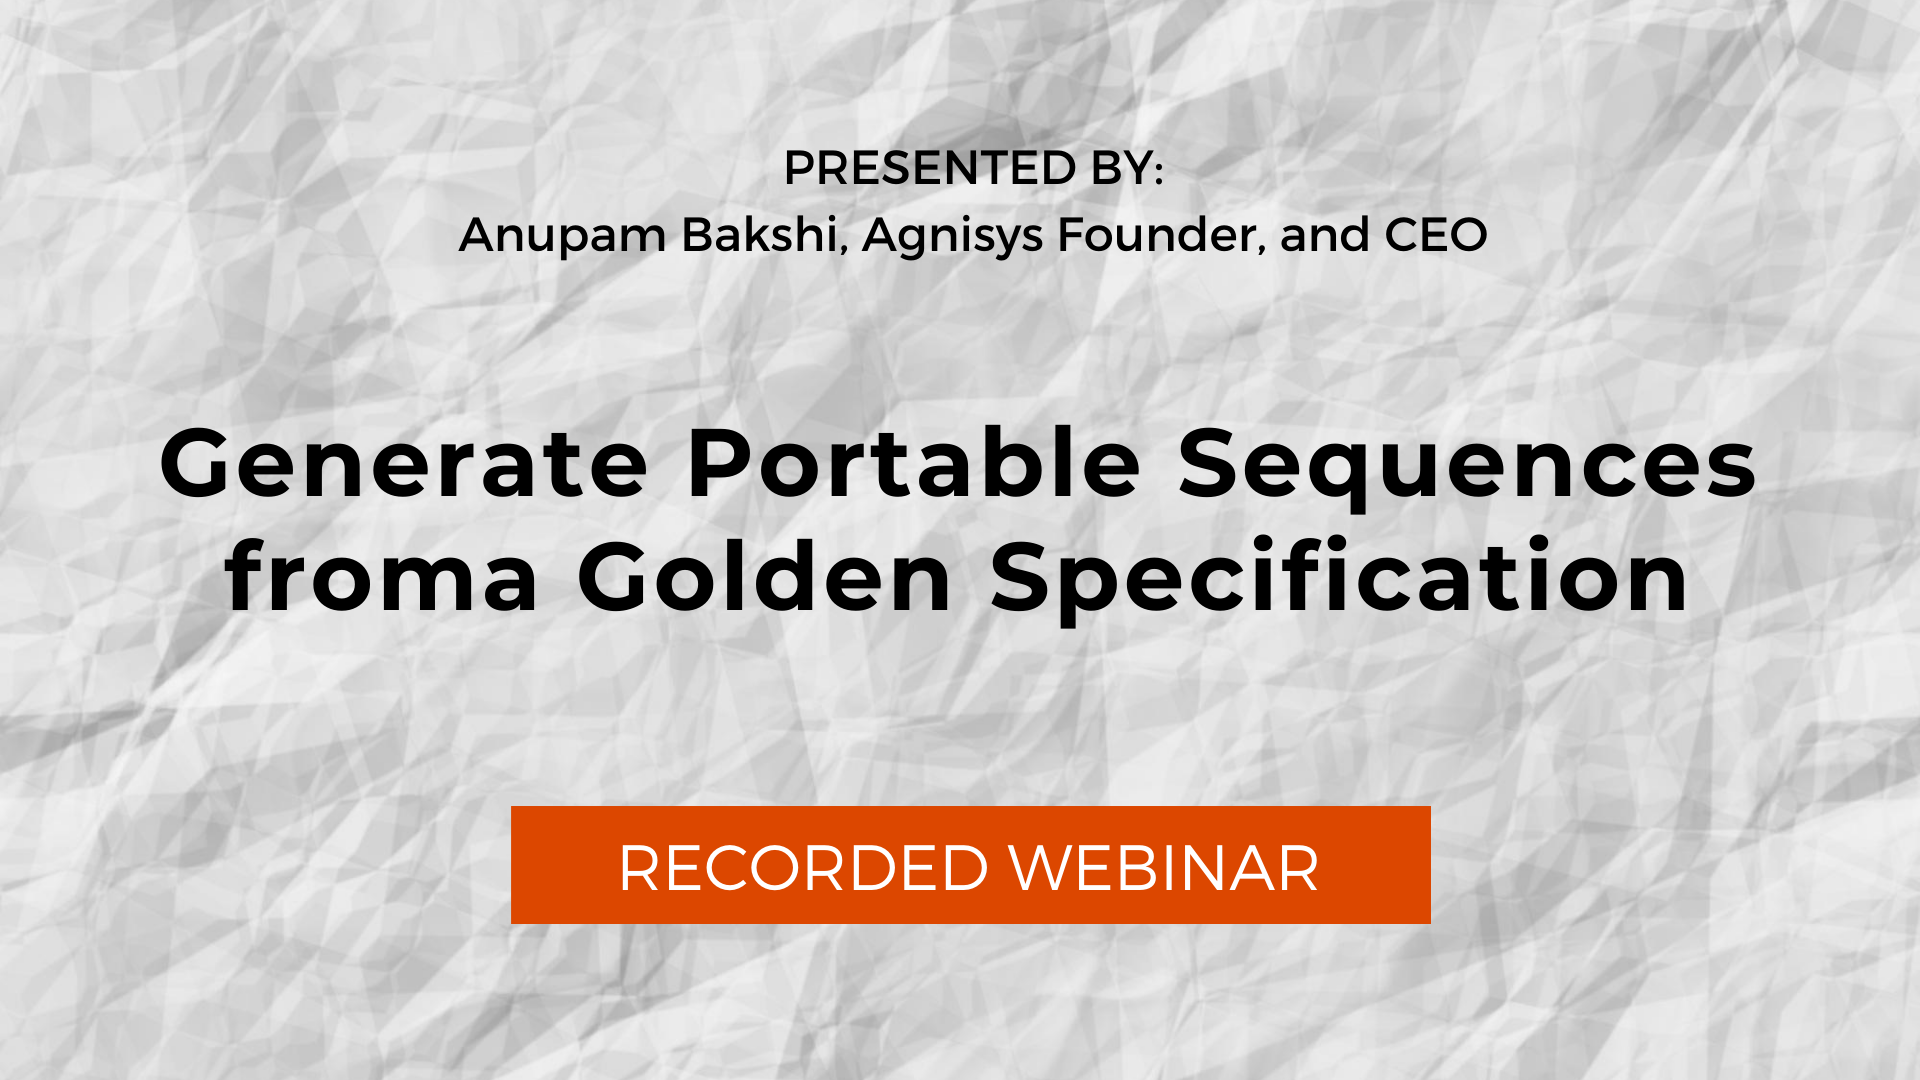 Generate Portable Sequences from a Golden Specification